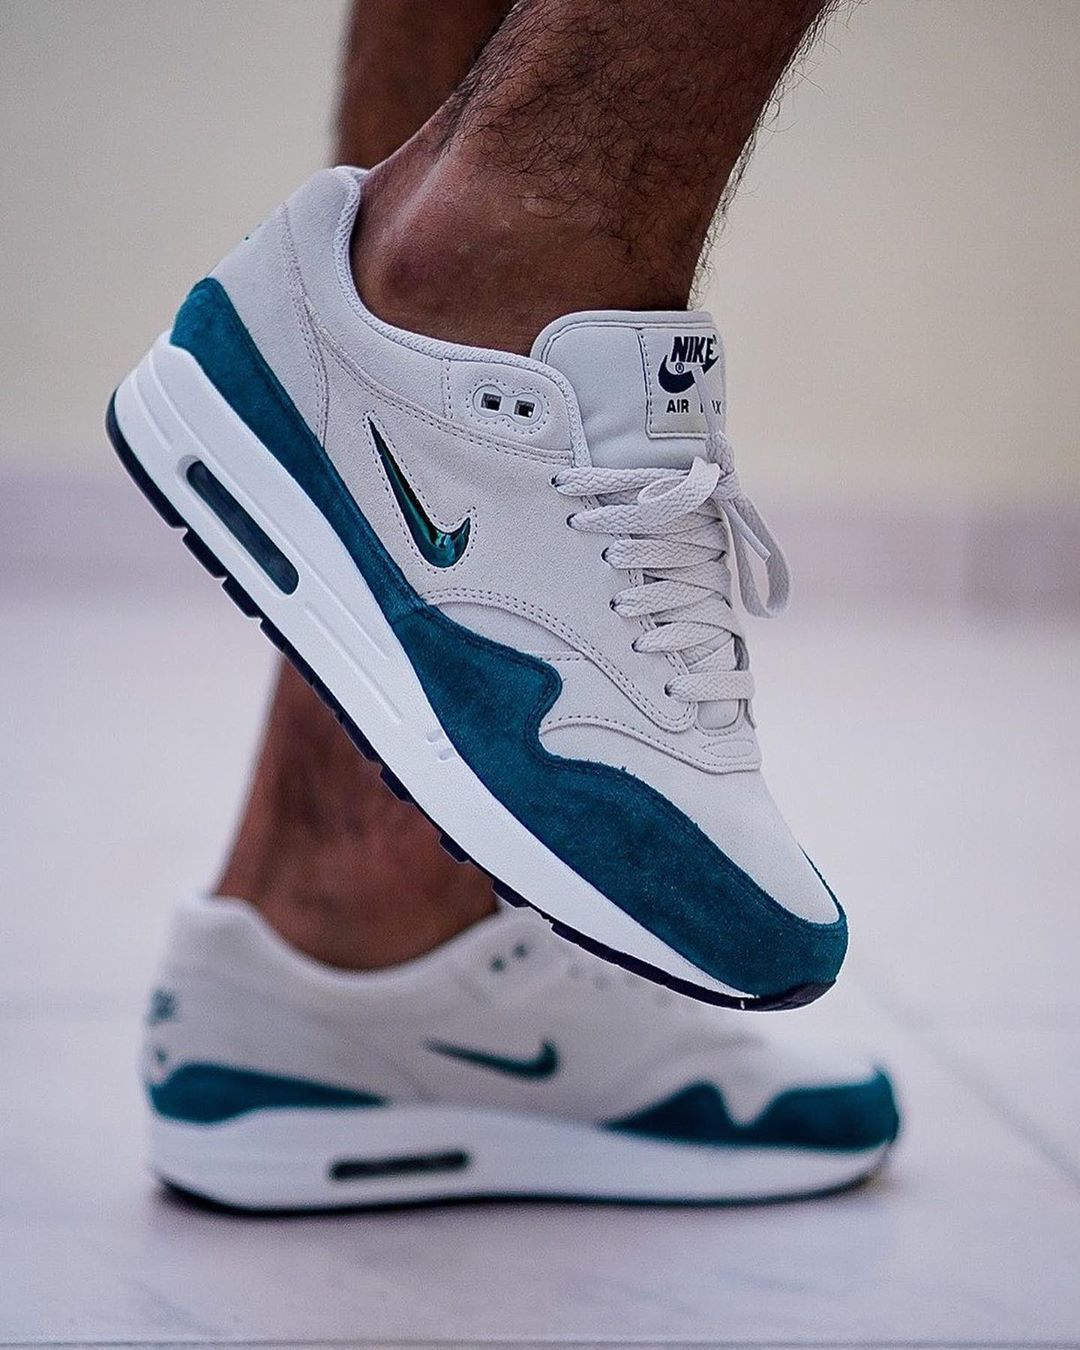 Nike Airmax 1 x Jewel 'Atomic Teal • I wish I copped a pair